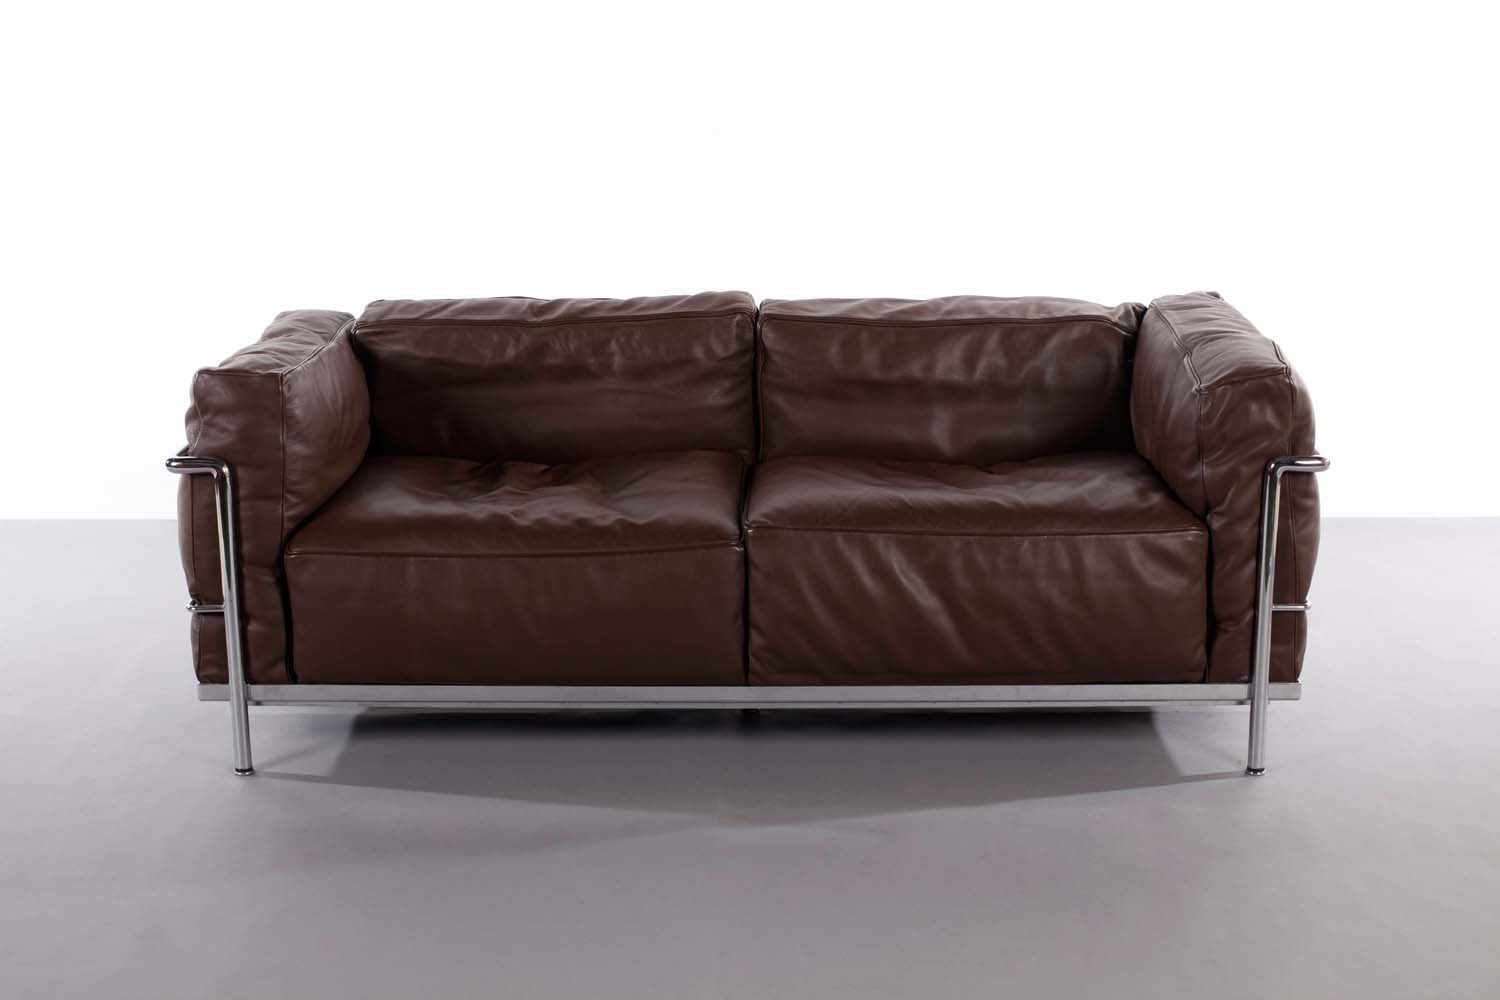 Lot 97   THE LC3 SOFA, BY LE CORBUSIER FOR CASSINA, In Dark Brown